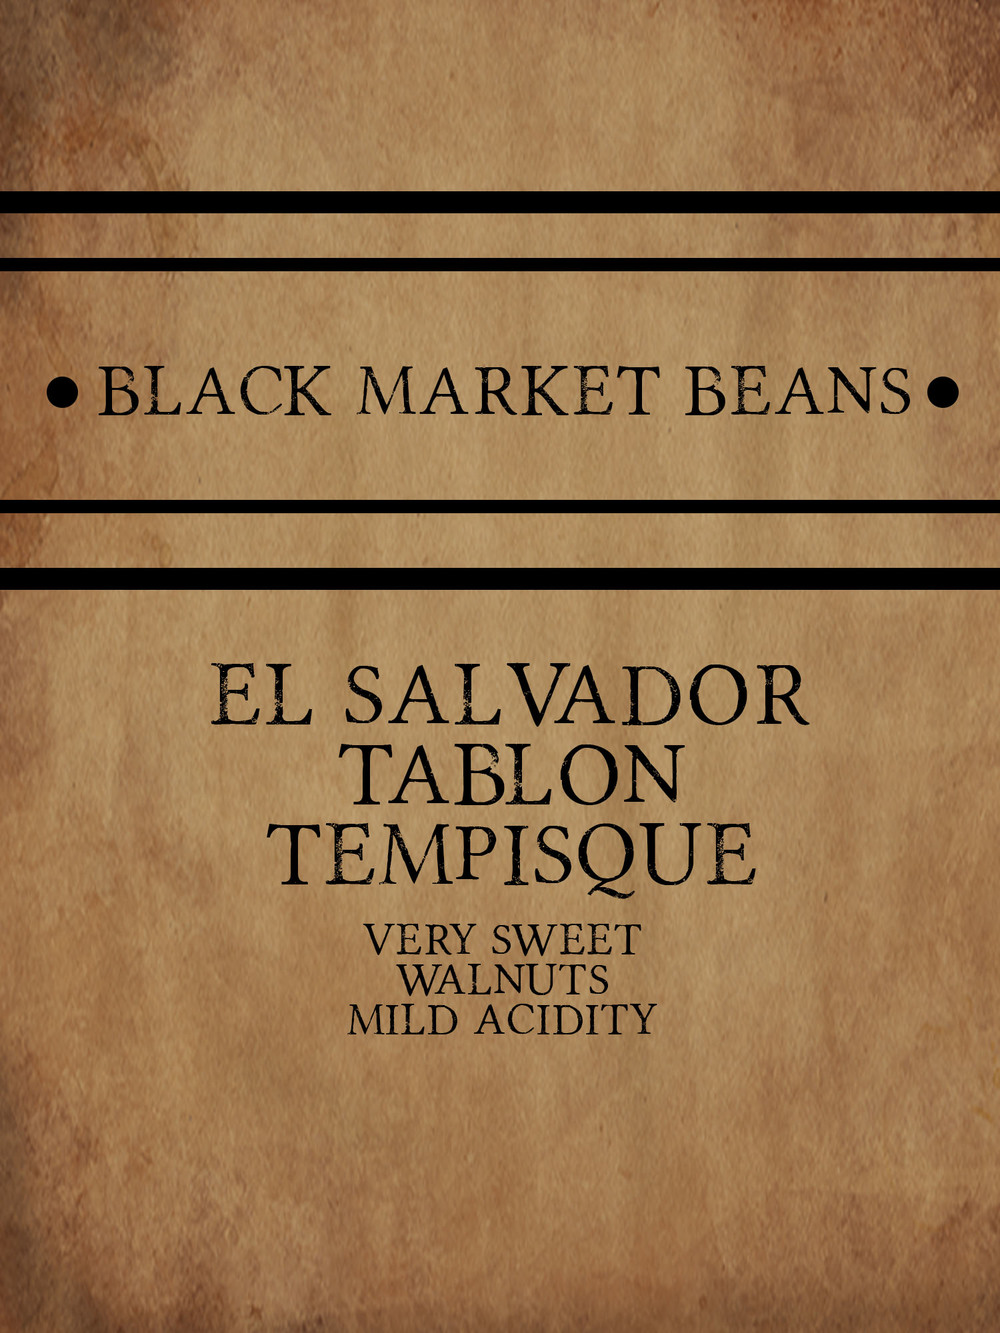 coffee_ElSalvador_Tablon_Tempisque.jpg